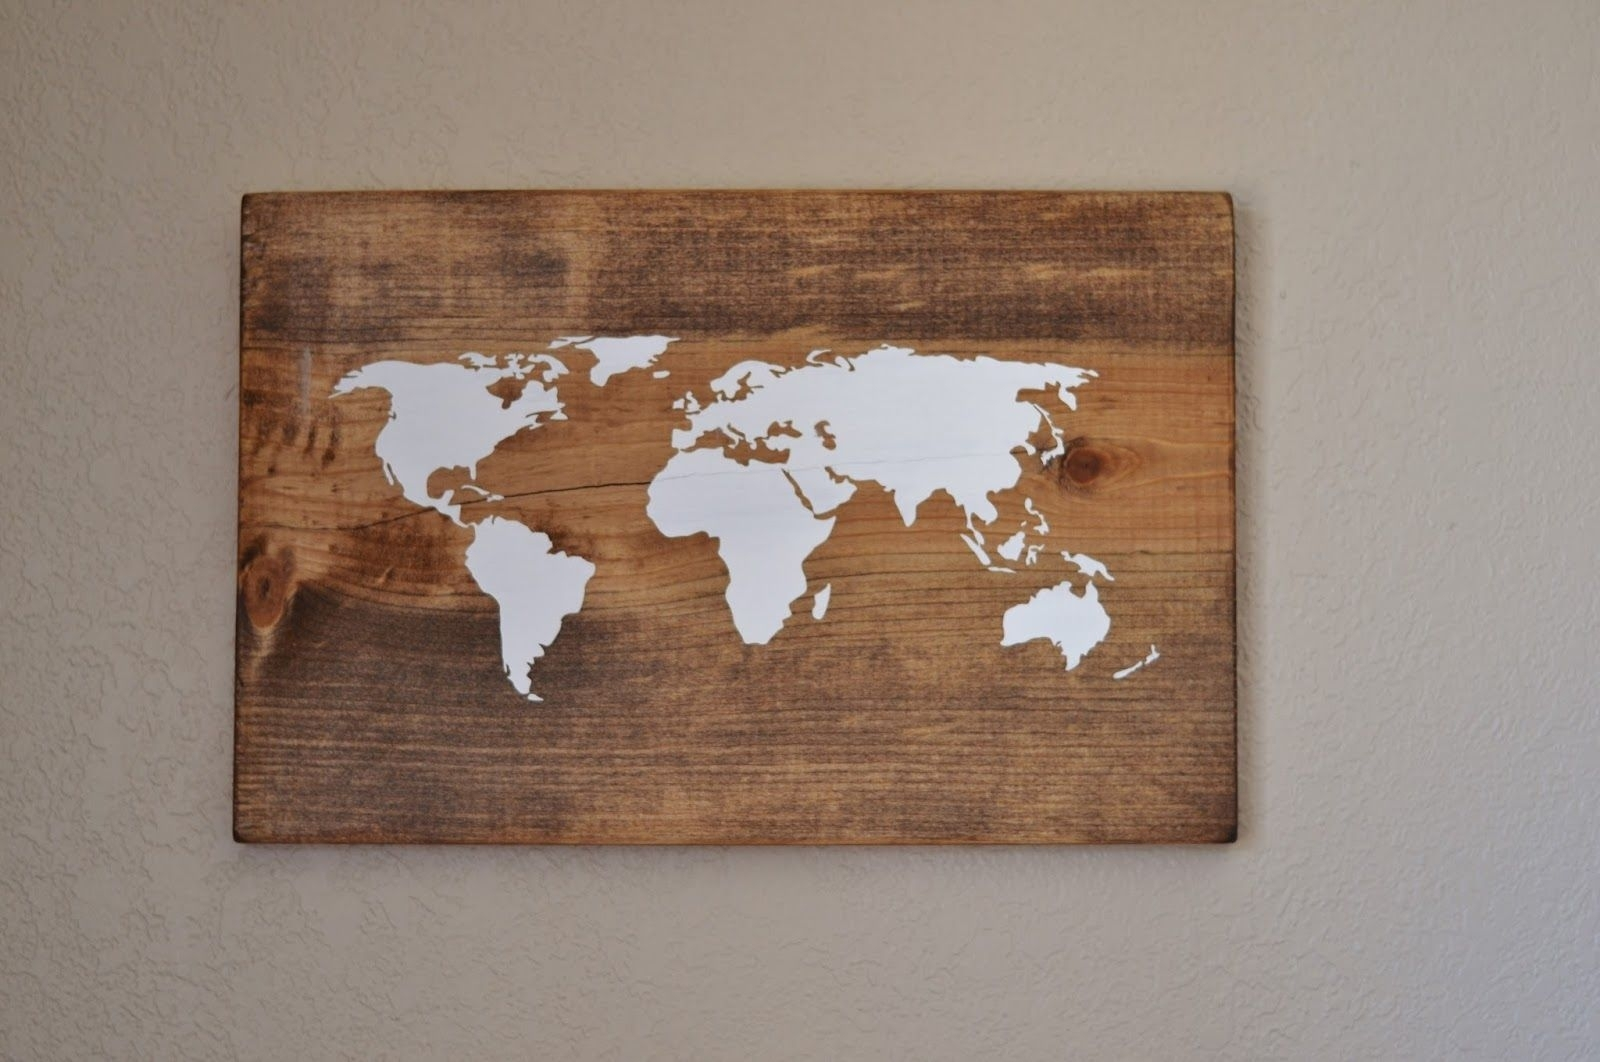 All Things Bright And Beautiful: Diy World Map Wall Art – Very Cool Throughout Most Up To Date Diy World Map Wall Art (View 2 of 20)